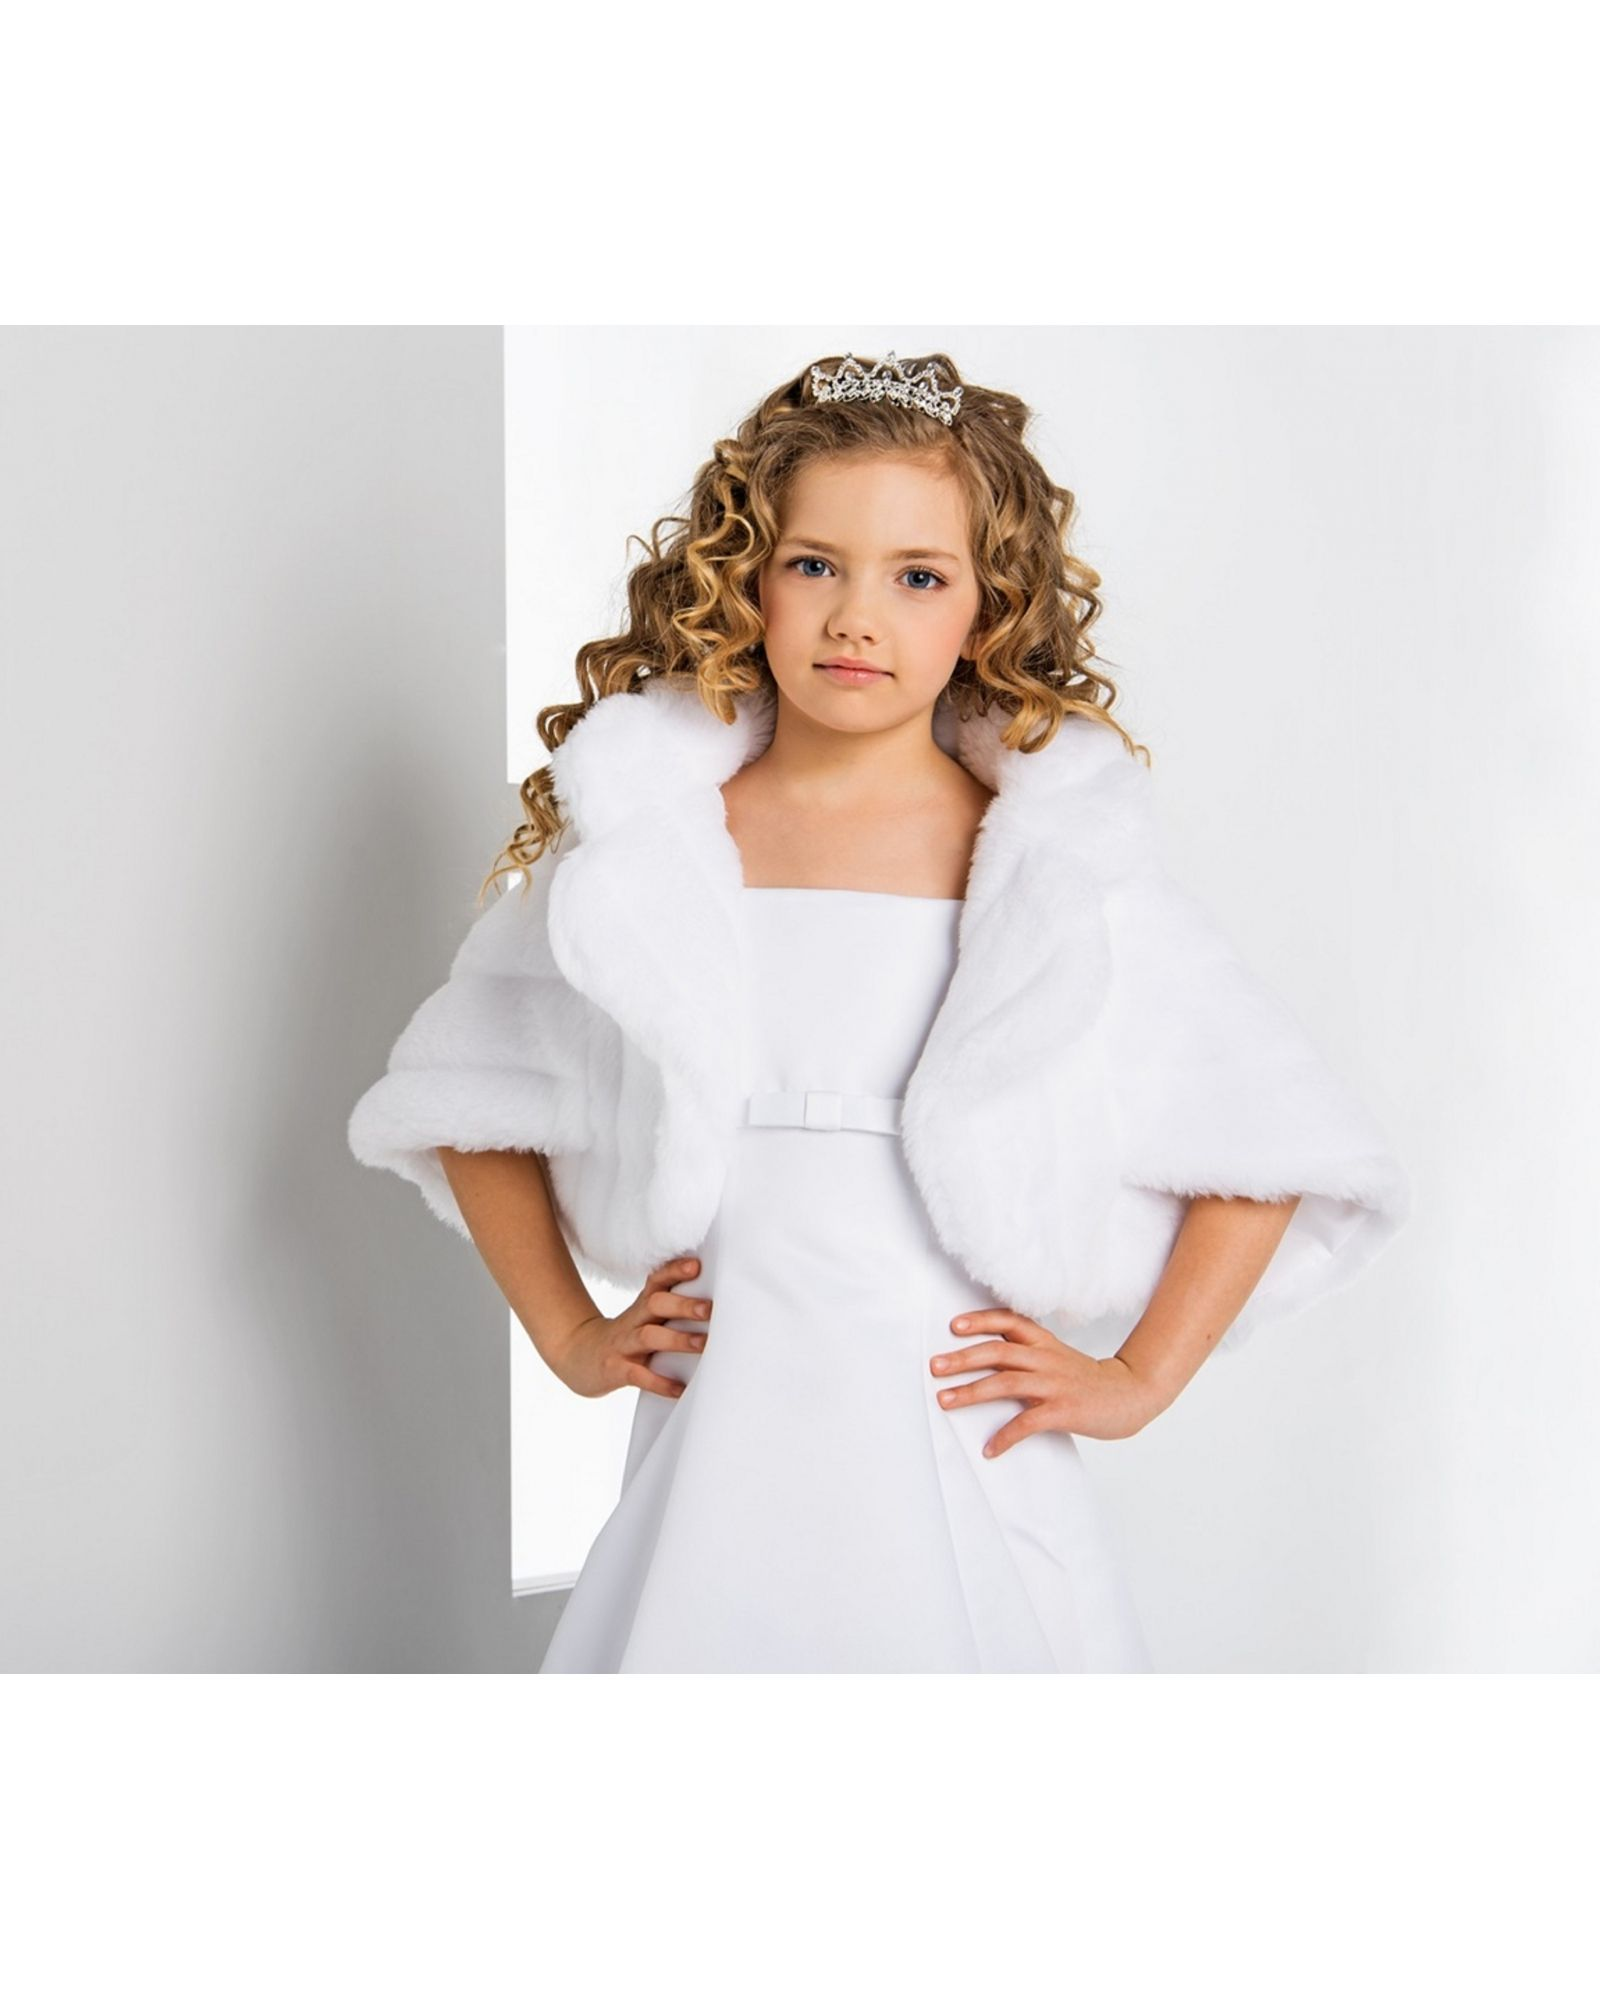 charlotte children's faux fur wedding bolero, childrens jacket